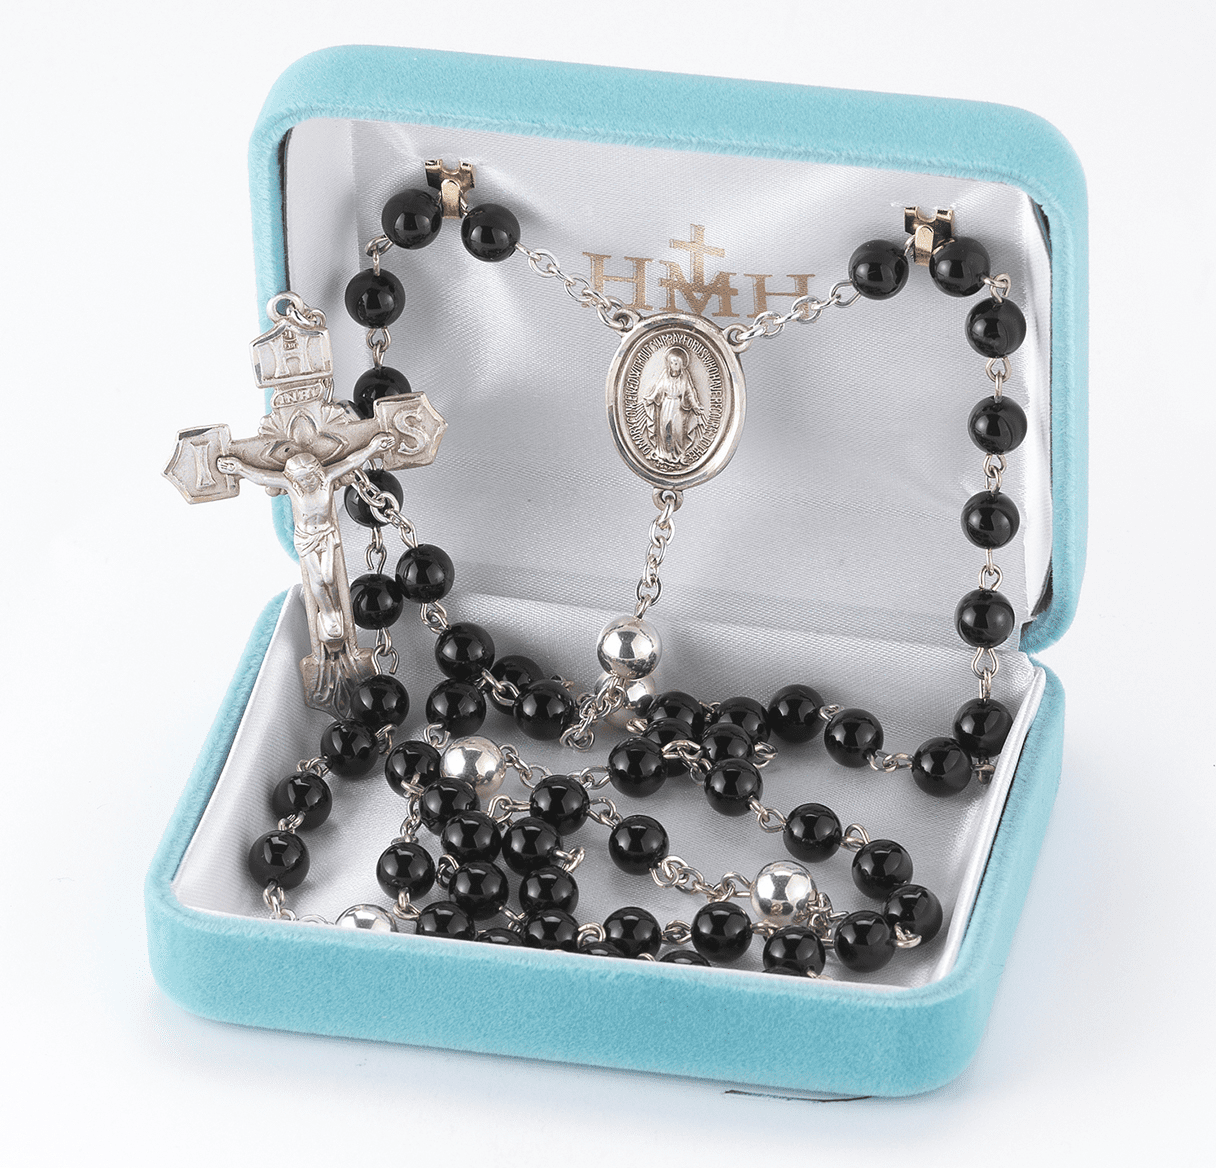 HMH Religious Black Onyx Sterling Silver Rosary with IHS Crucifix and Miraculous Center